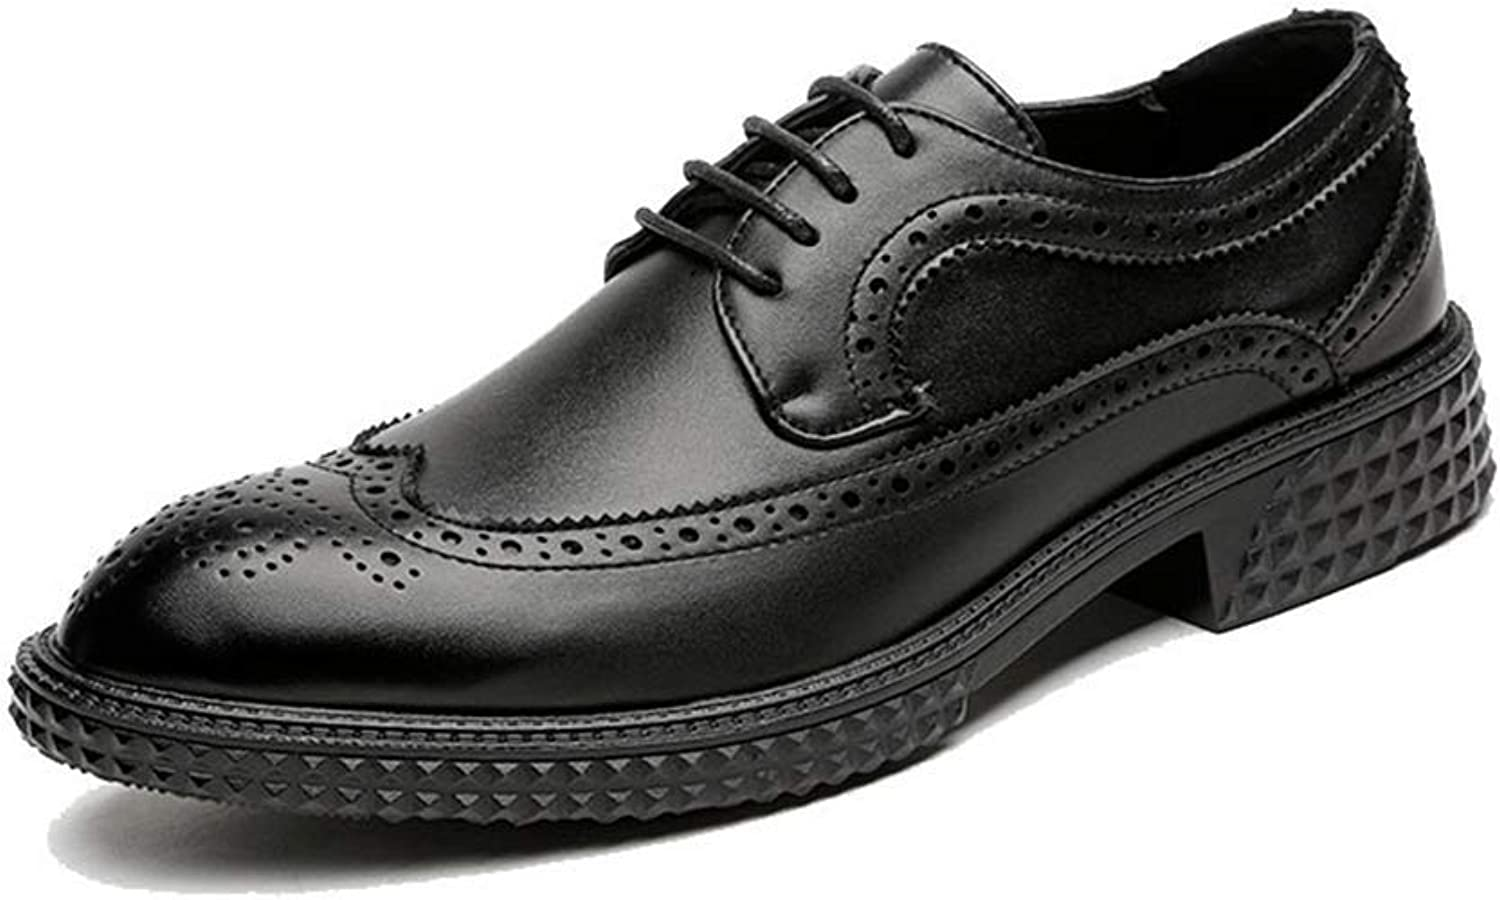 ZHRUI Men Dress shoes Formal shoes for Wedding Brogue Business Office Oxfords (color   Black, Size   4.5 UK)